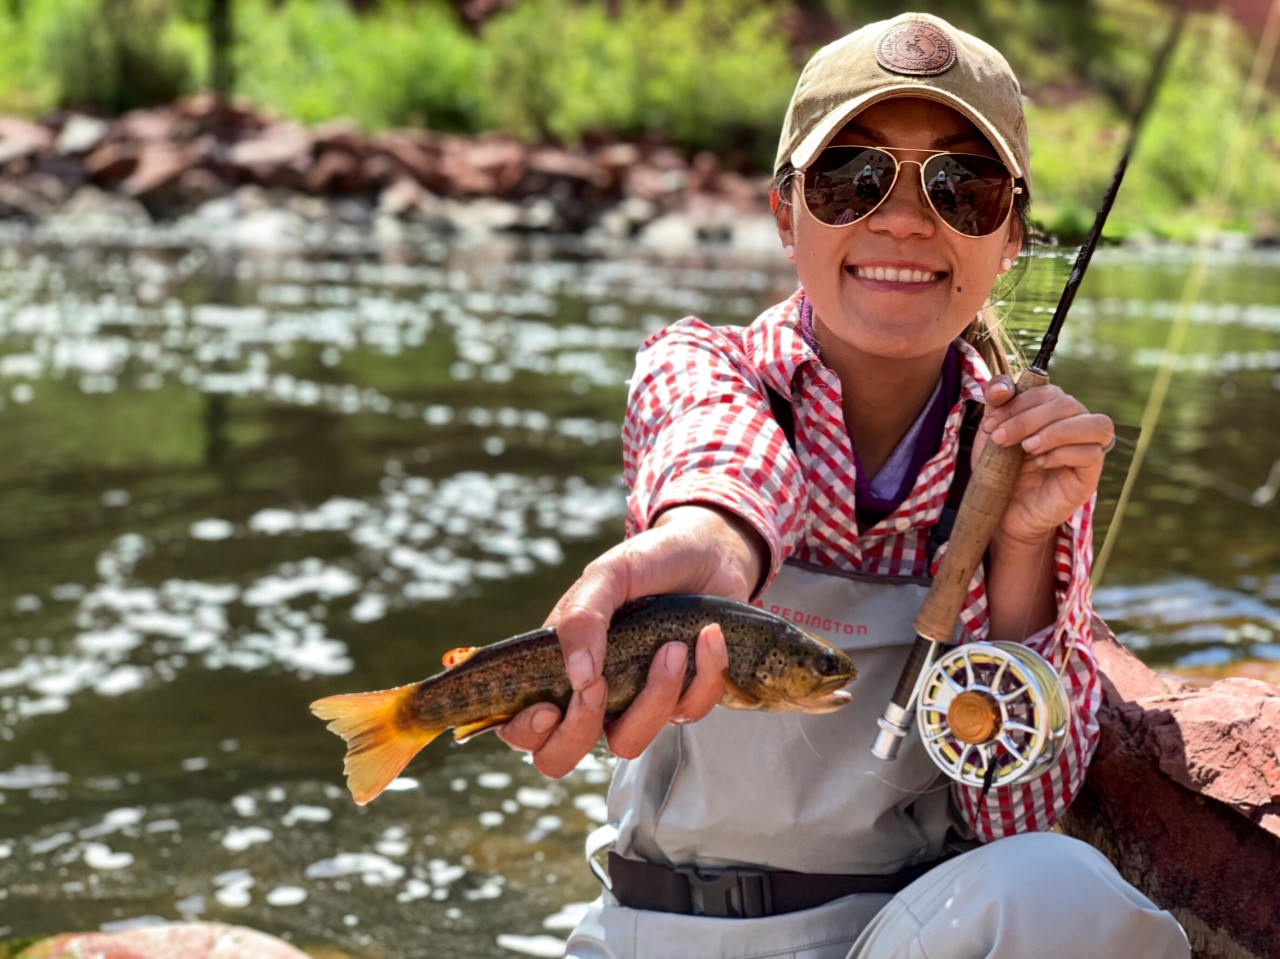 Lisa Le  Lisa is an Oklahoma native and grew up spinning rod fishing. It wasn't until her move to Colorado did she pick up fly fishing. She became obsessed from the very moment she picked up a fly rod. She is a pediatric echocardiographer and finds joy in taking care of the pediatric population. She has fished all over Colorado, but especially loves fishing in high alpine lakes or rivers. Her favorite catches are cutthroat and brown trouts. She loves being outdoors and you can find her on the water with her husband and bernedoodle-Traveler. Fly fishing brings peace and serenity to her psyche and she is looking forward to sharing her passion for sport and nature with the younger generation.